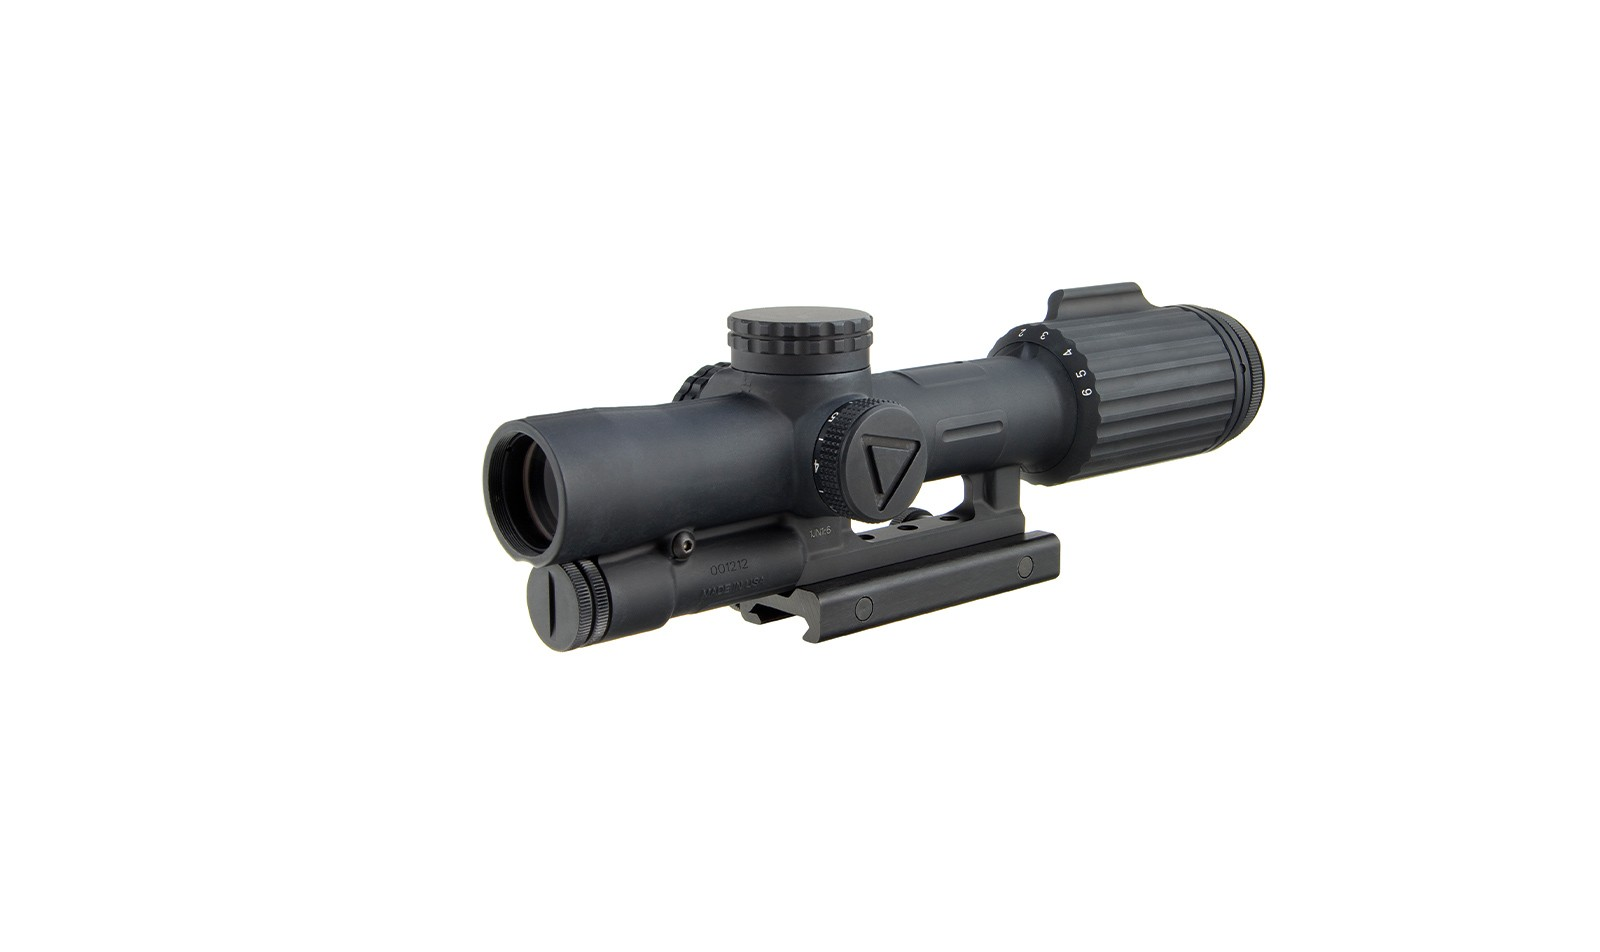 Trijicon VCOG® 1-6x24 LED Riflescope - MIL